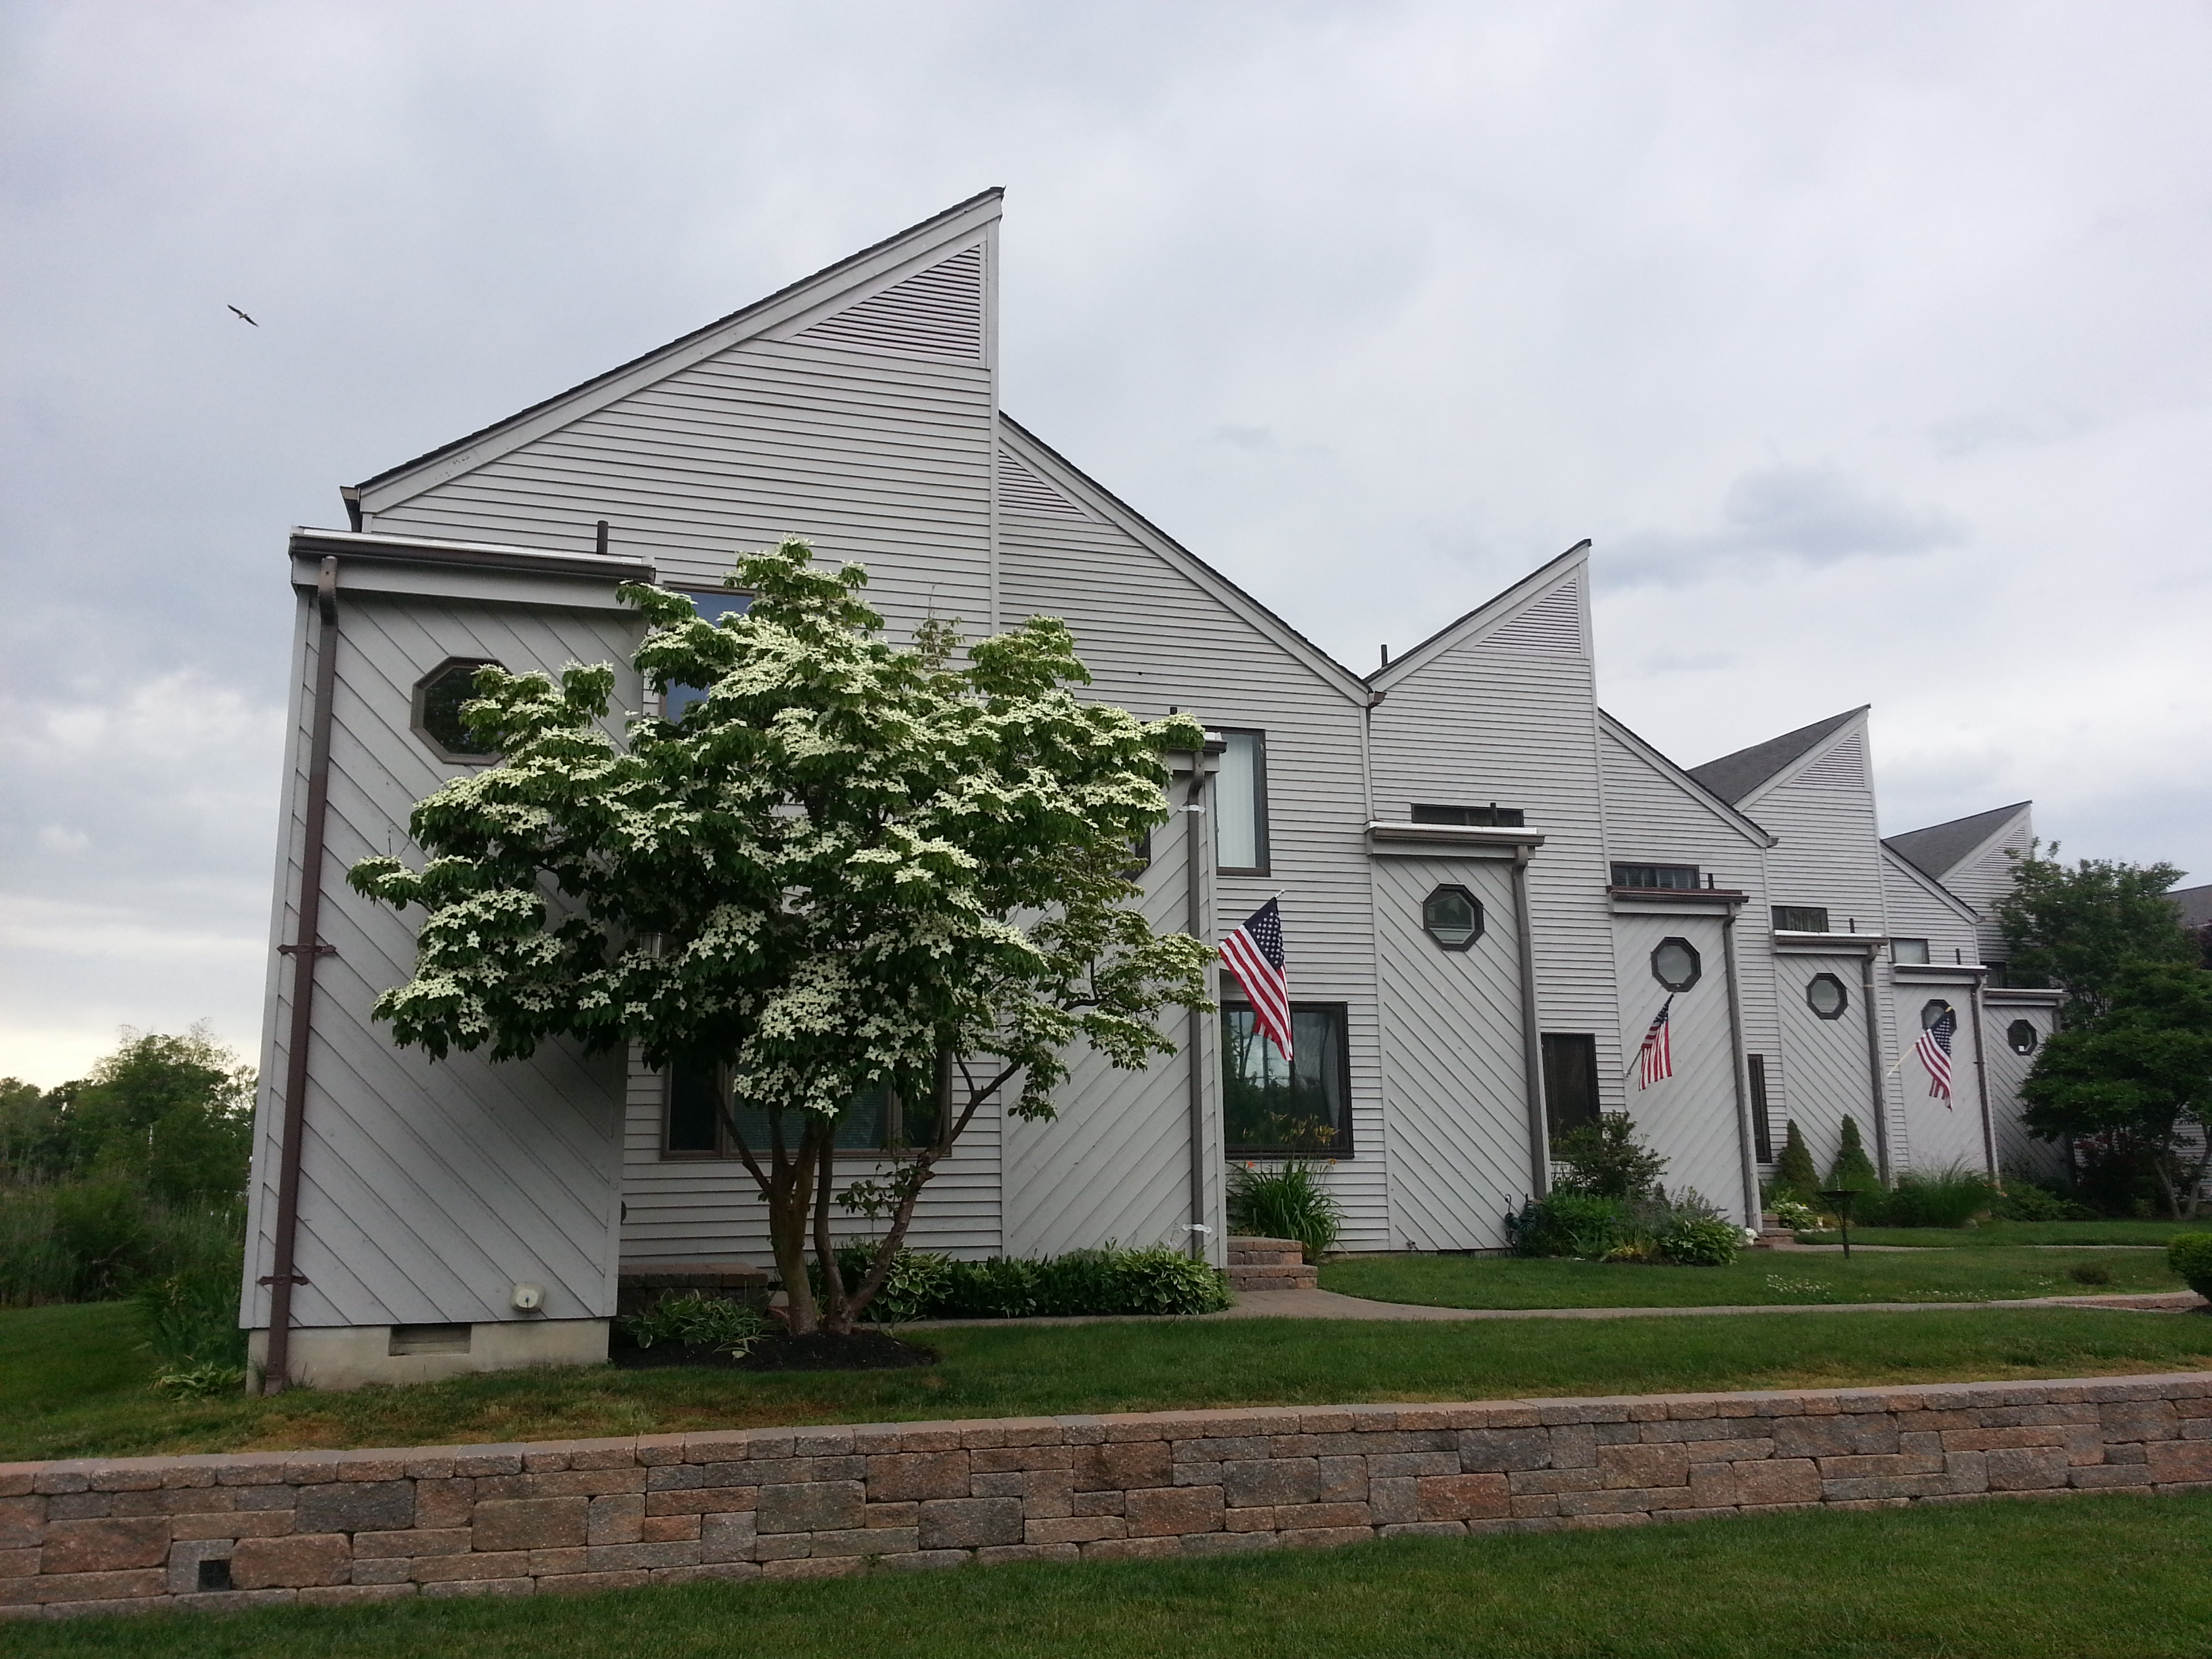 Harbor Pointe in Oceanport NJ is a community of 24 townhouse style condos.